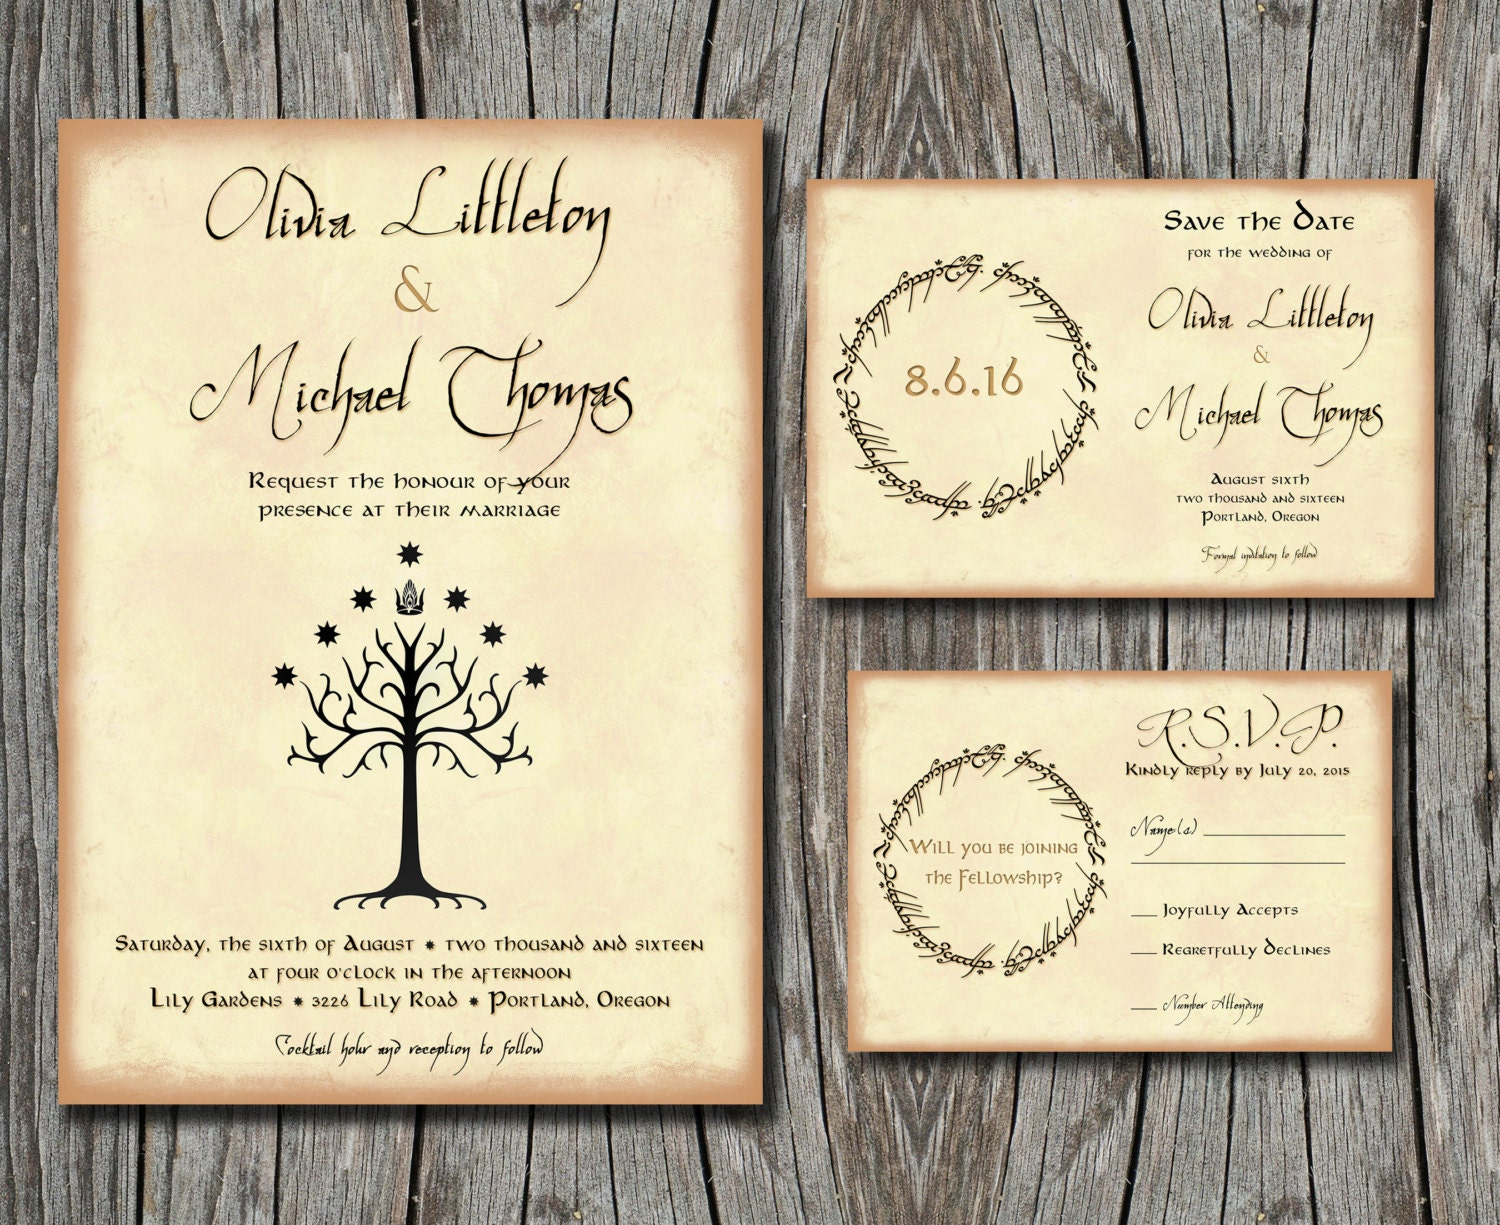 Lord of the rings wedding invitation set save the by for Pictures of wedding rings for invitations